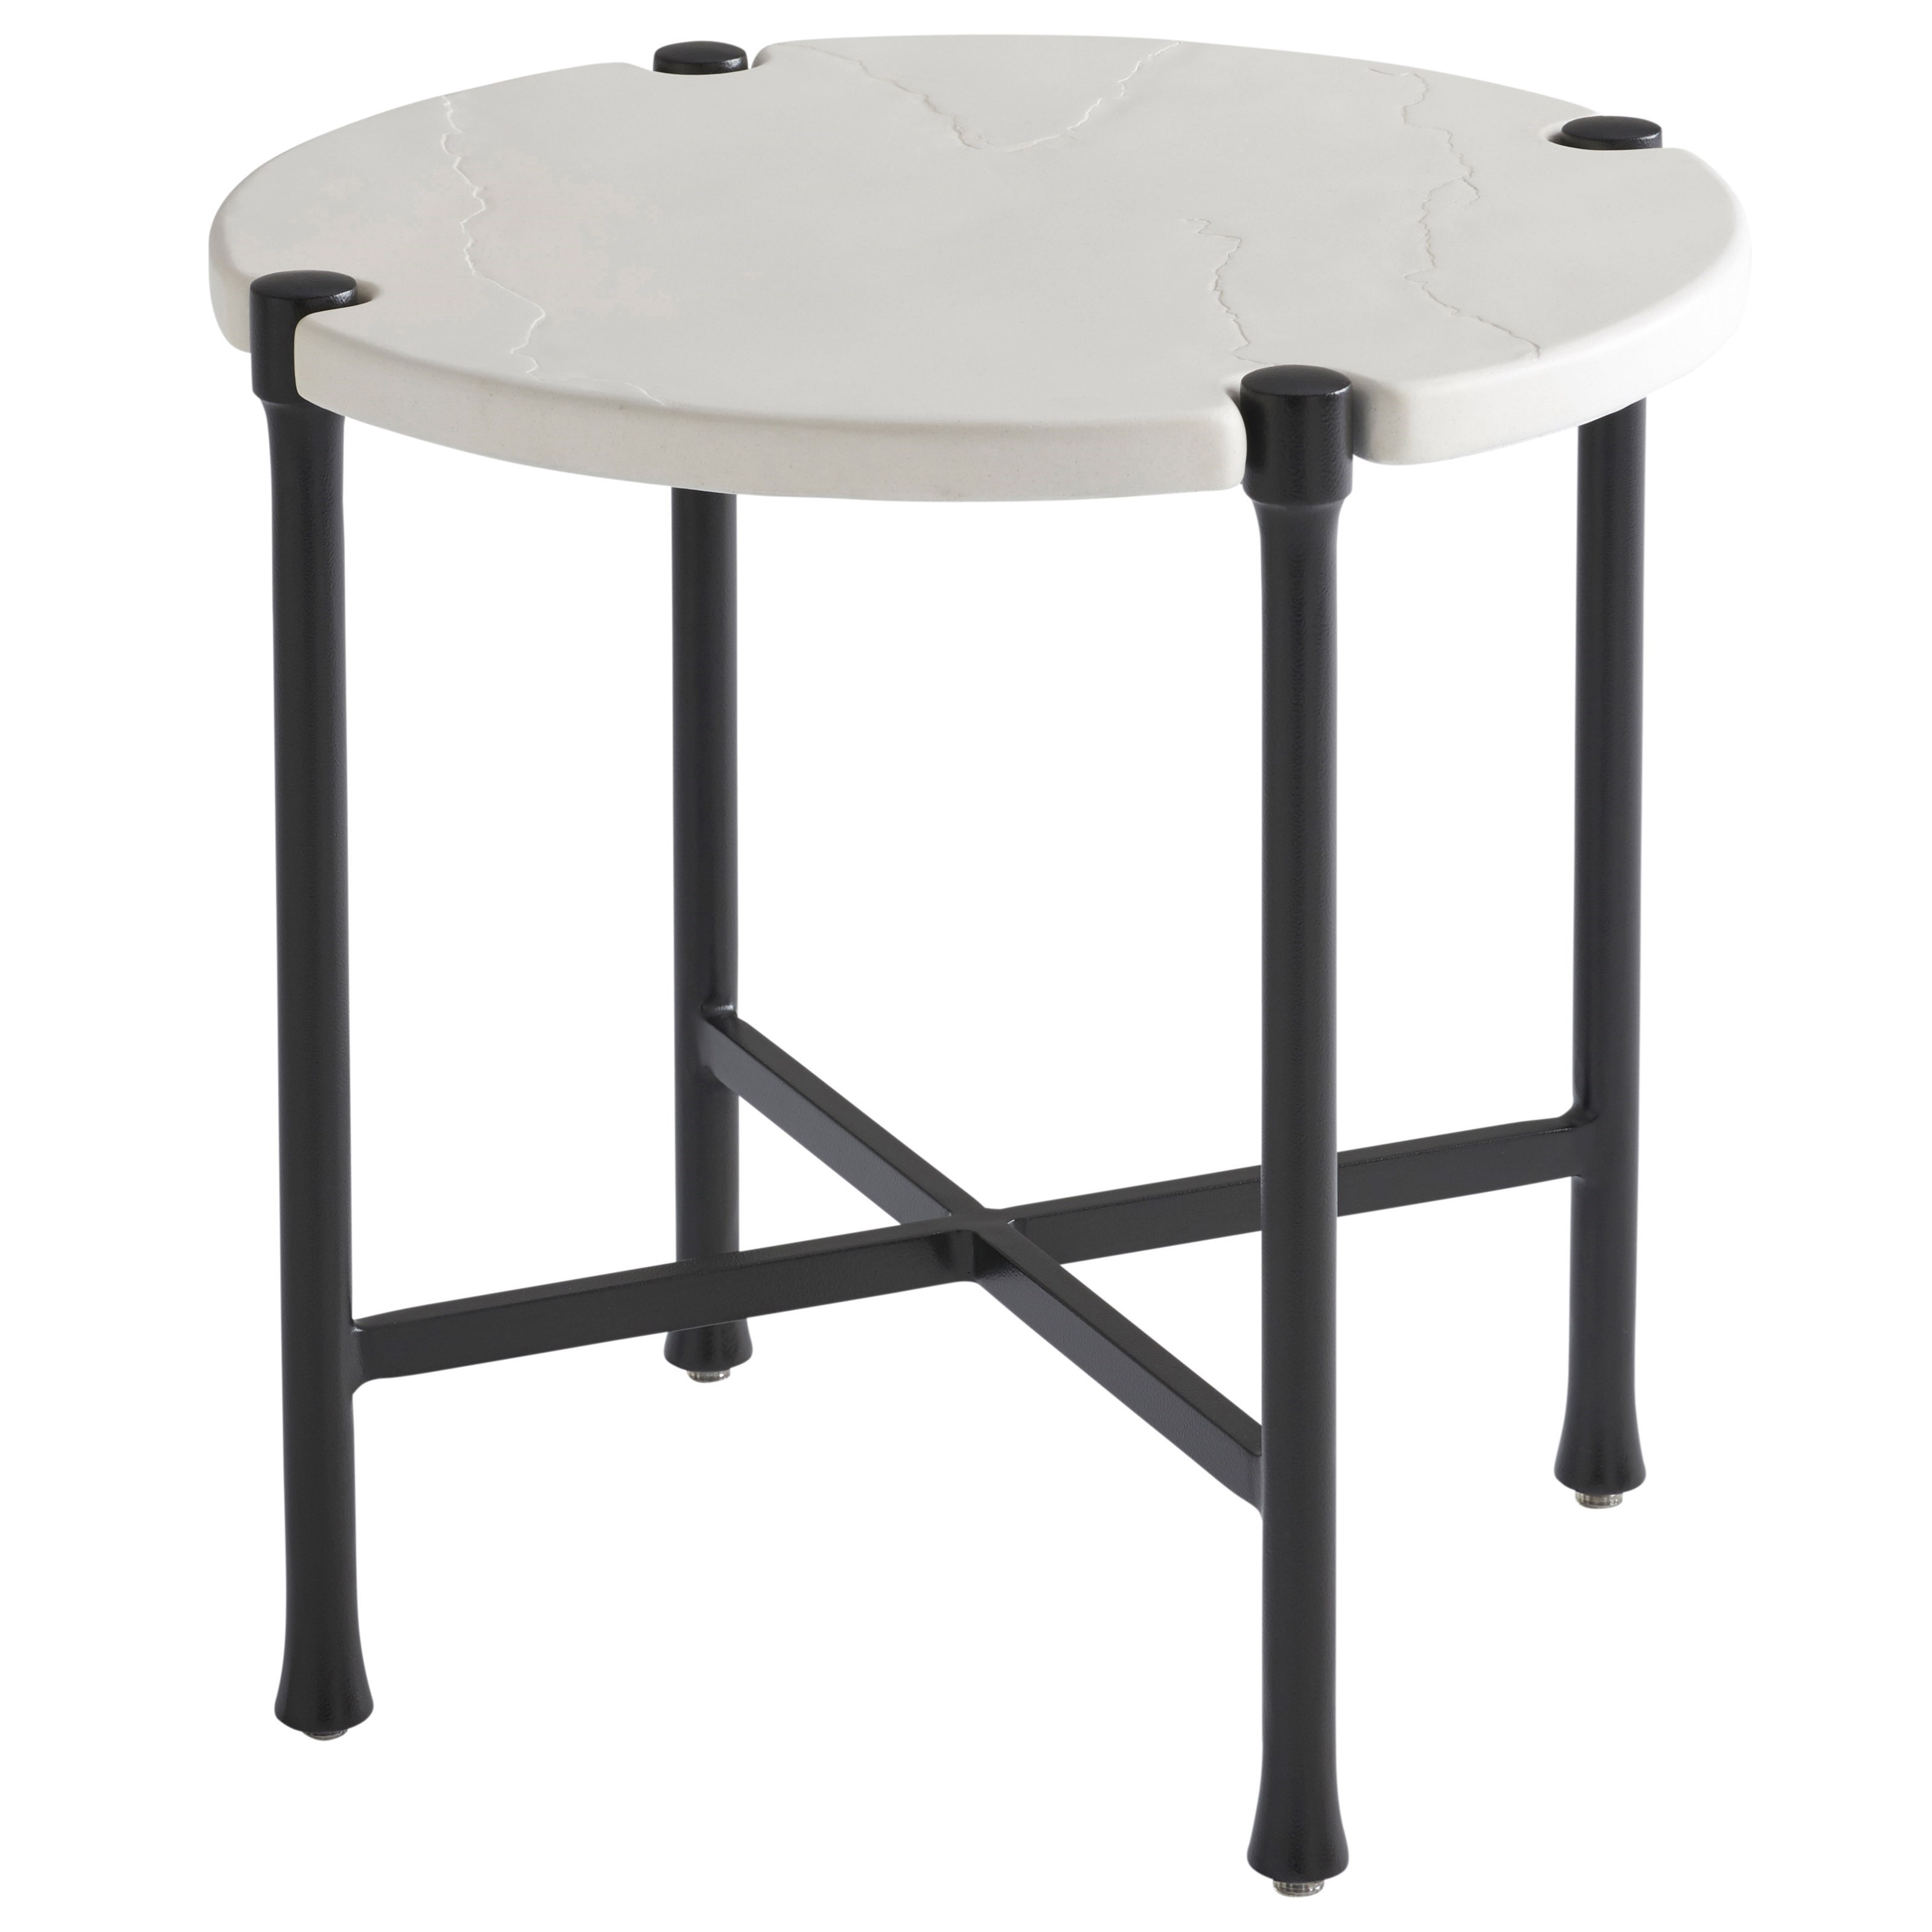 Pavlova Outdoor Round End Table by Tommy Bahama Outdoor Living at Baer's Furniture